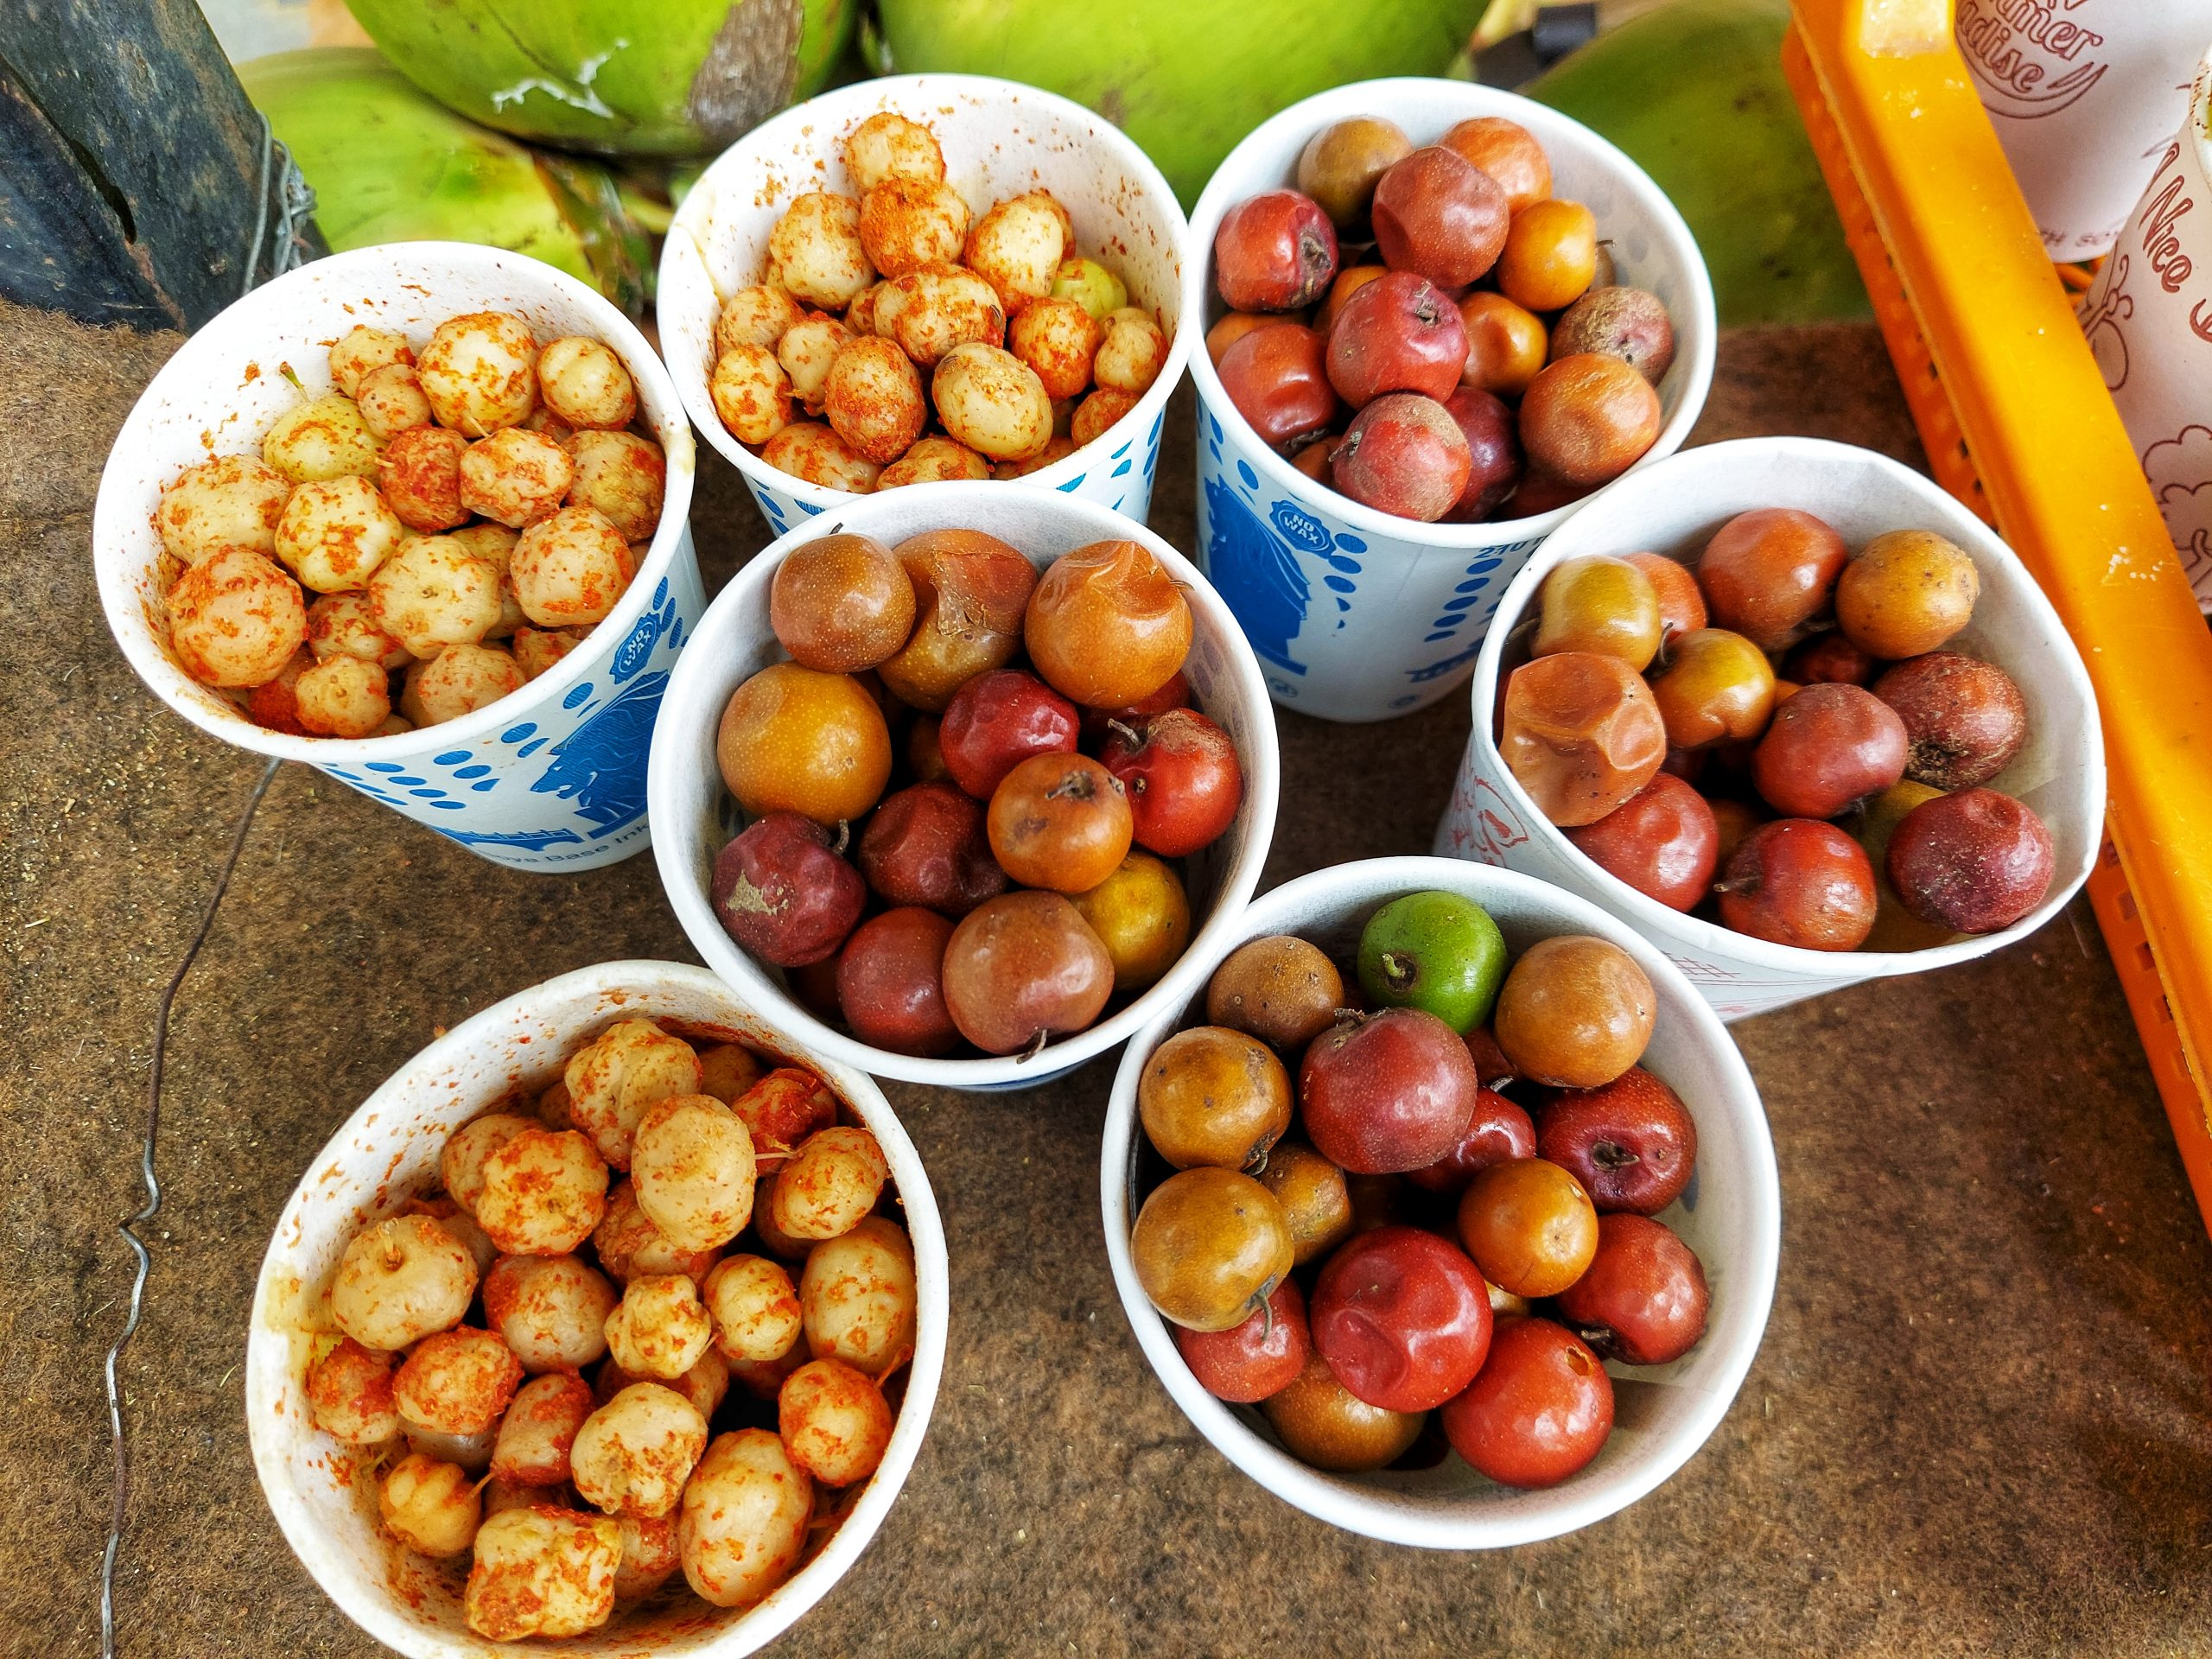 Gooseberry snacks for sale at local shops